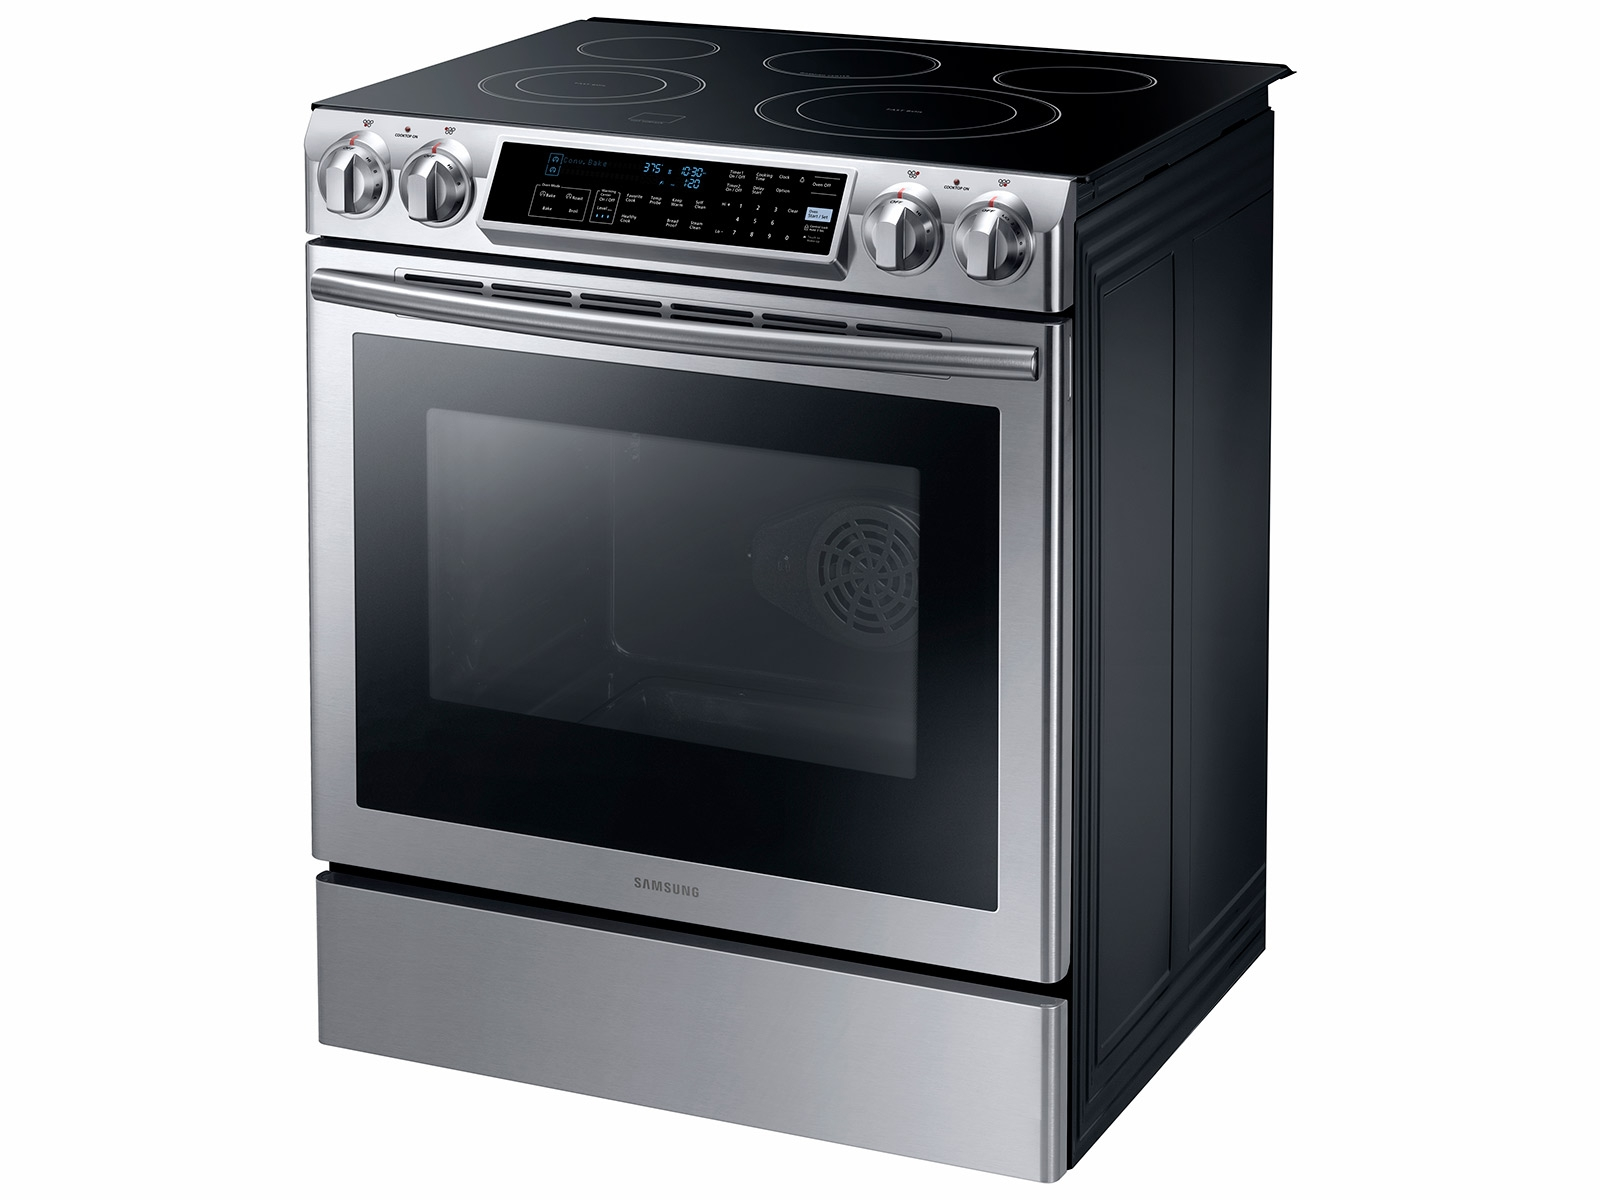 electric stove msd street fire ignition box wiring diagram 5 8 cu ft slide in range ranges ne58f9500ss aa samsung us